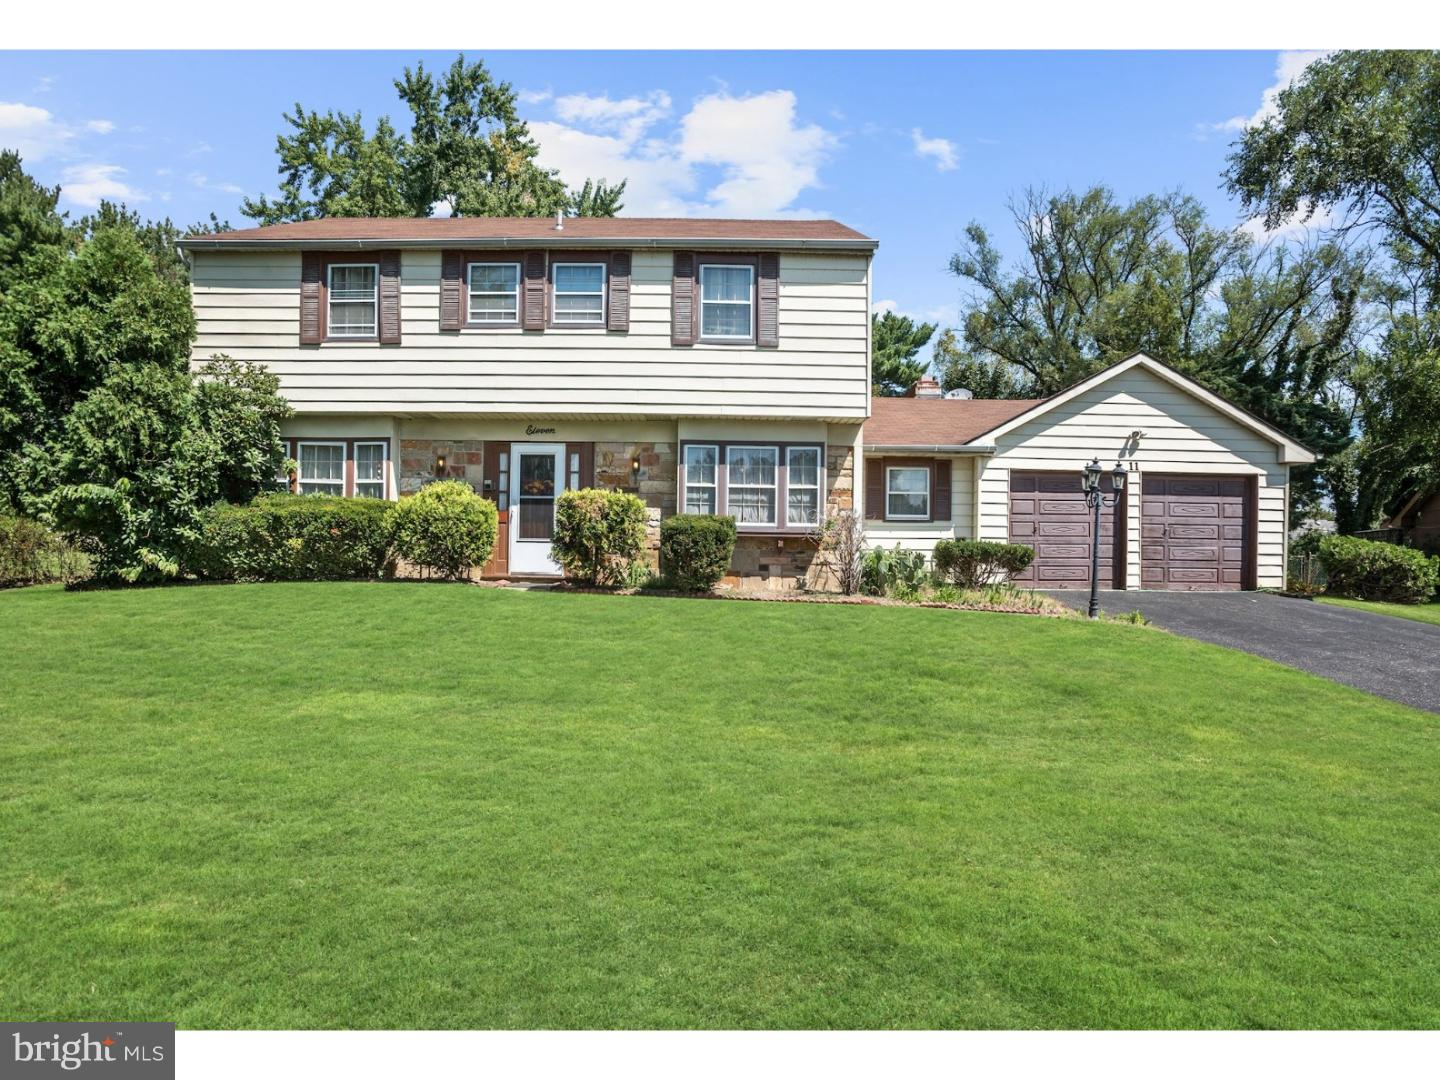 Single Family Home for Sale at 11 CRESTVIEW Drive Willingboro Township, New Jersey 08046 United States